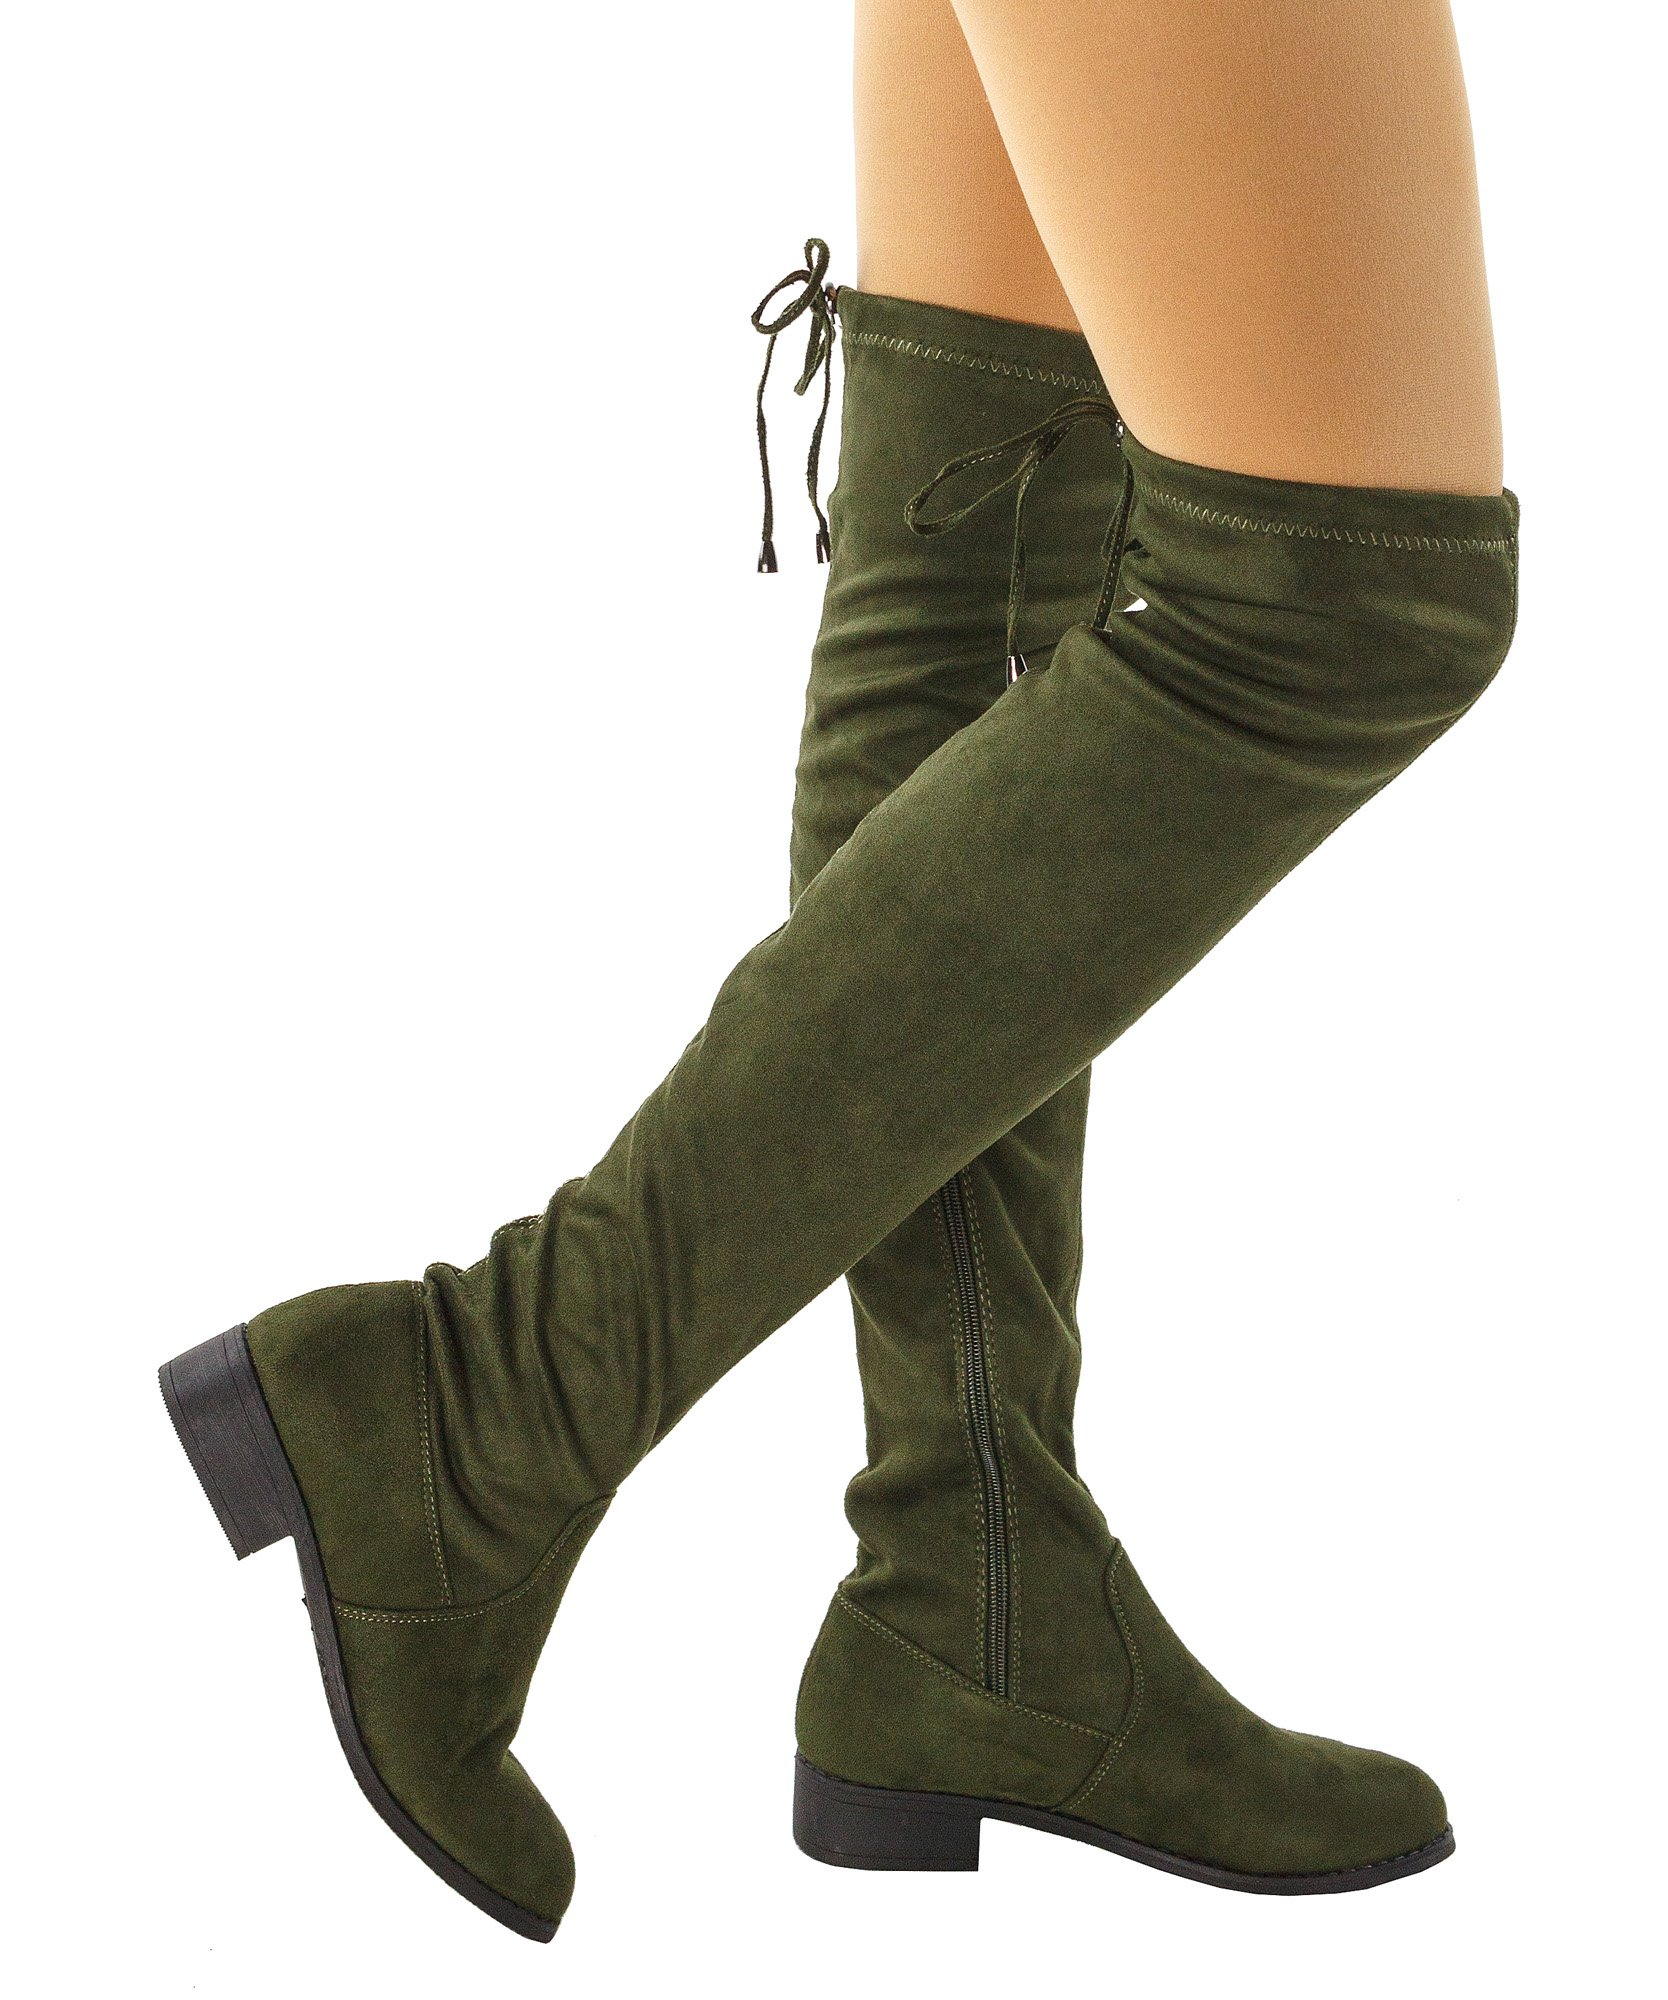 RF ROOM OF FASHION Women's Faux Suede Back Tie Fitted Flat to Low Chunky Heel Over The Knee High Boots Olive (8)